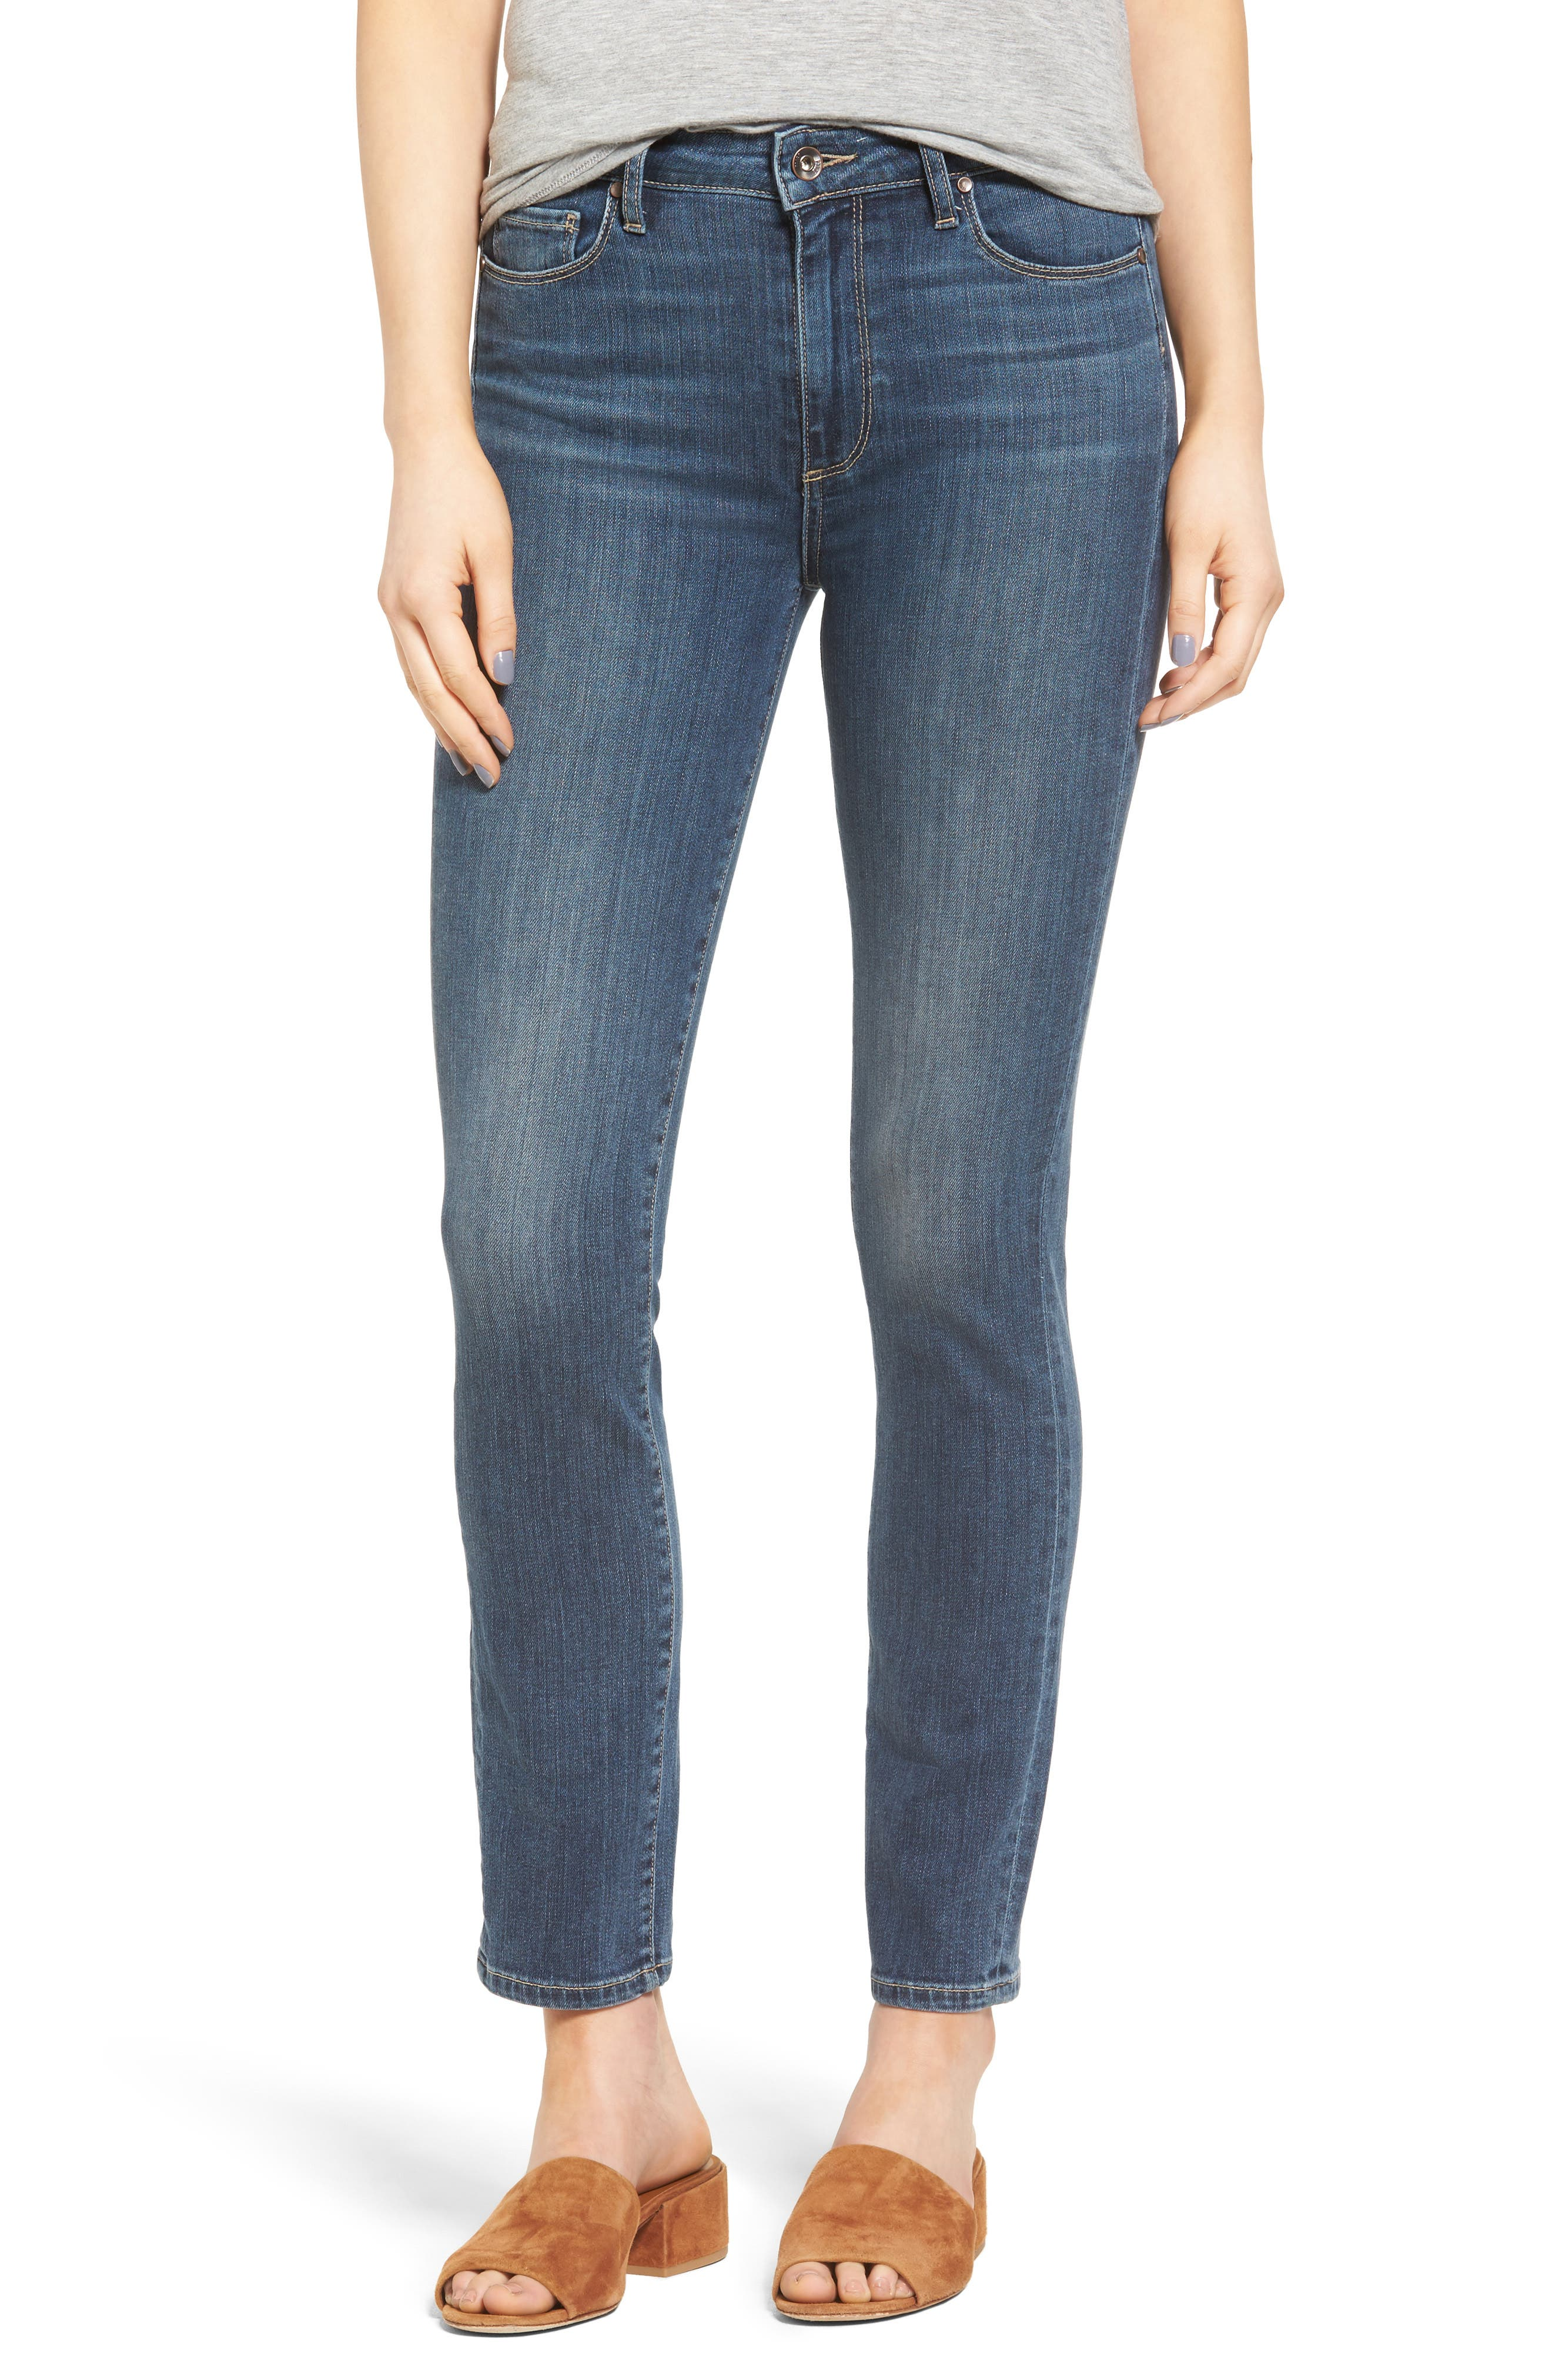 Alternate Image 1 Selected - PAIGE River High Waist Ankle Peg Straight Leg Jeans (Izzy Distressed)